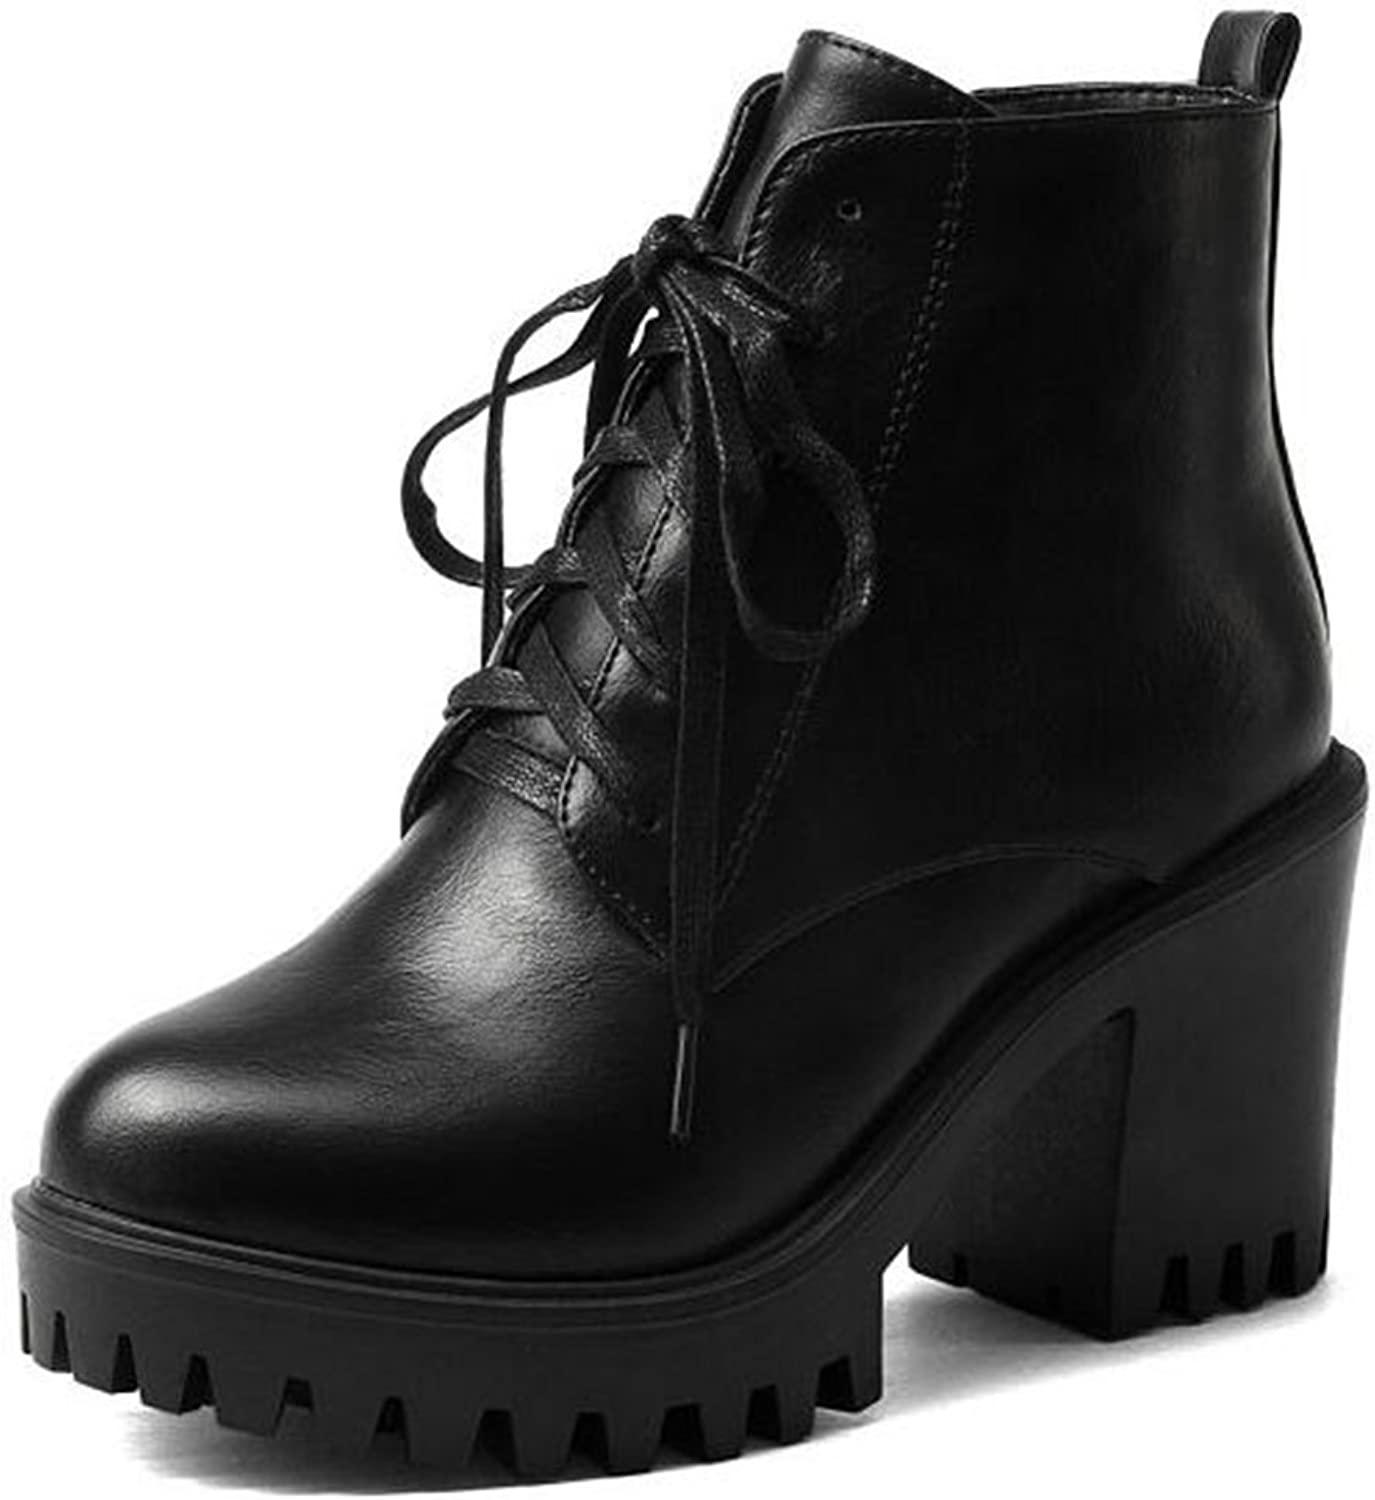 IDIFU Women's Vintage Lace Up Side Zipper Ankle Boots High Chunky Heels Platform Martin Booties